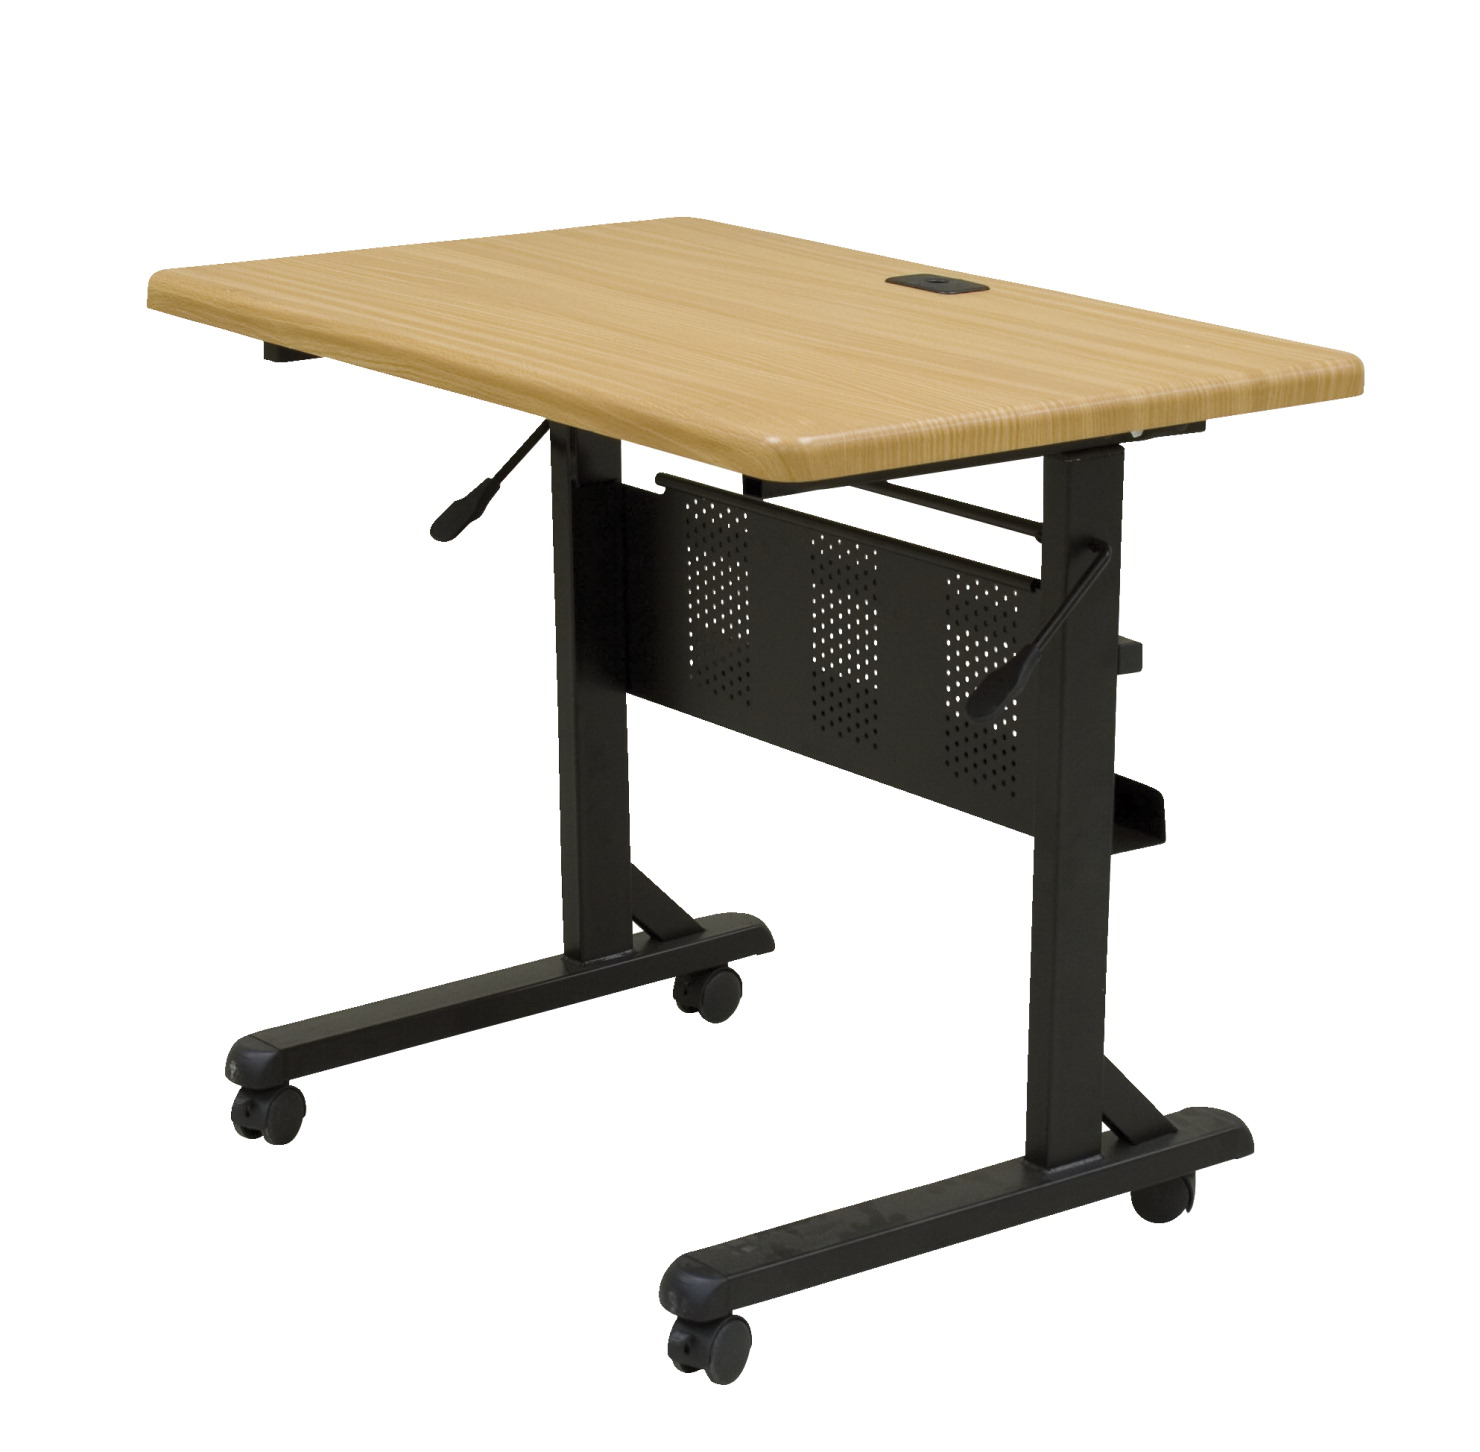 MooreCo Flipper Training Table with Casters, 36 x 24 x 29-1/2 Inches, PVC Top, Black Frame, Teak